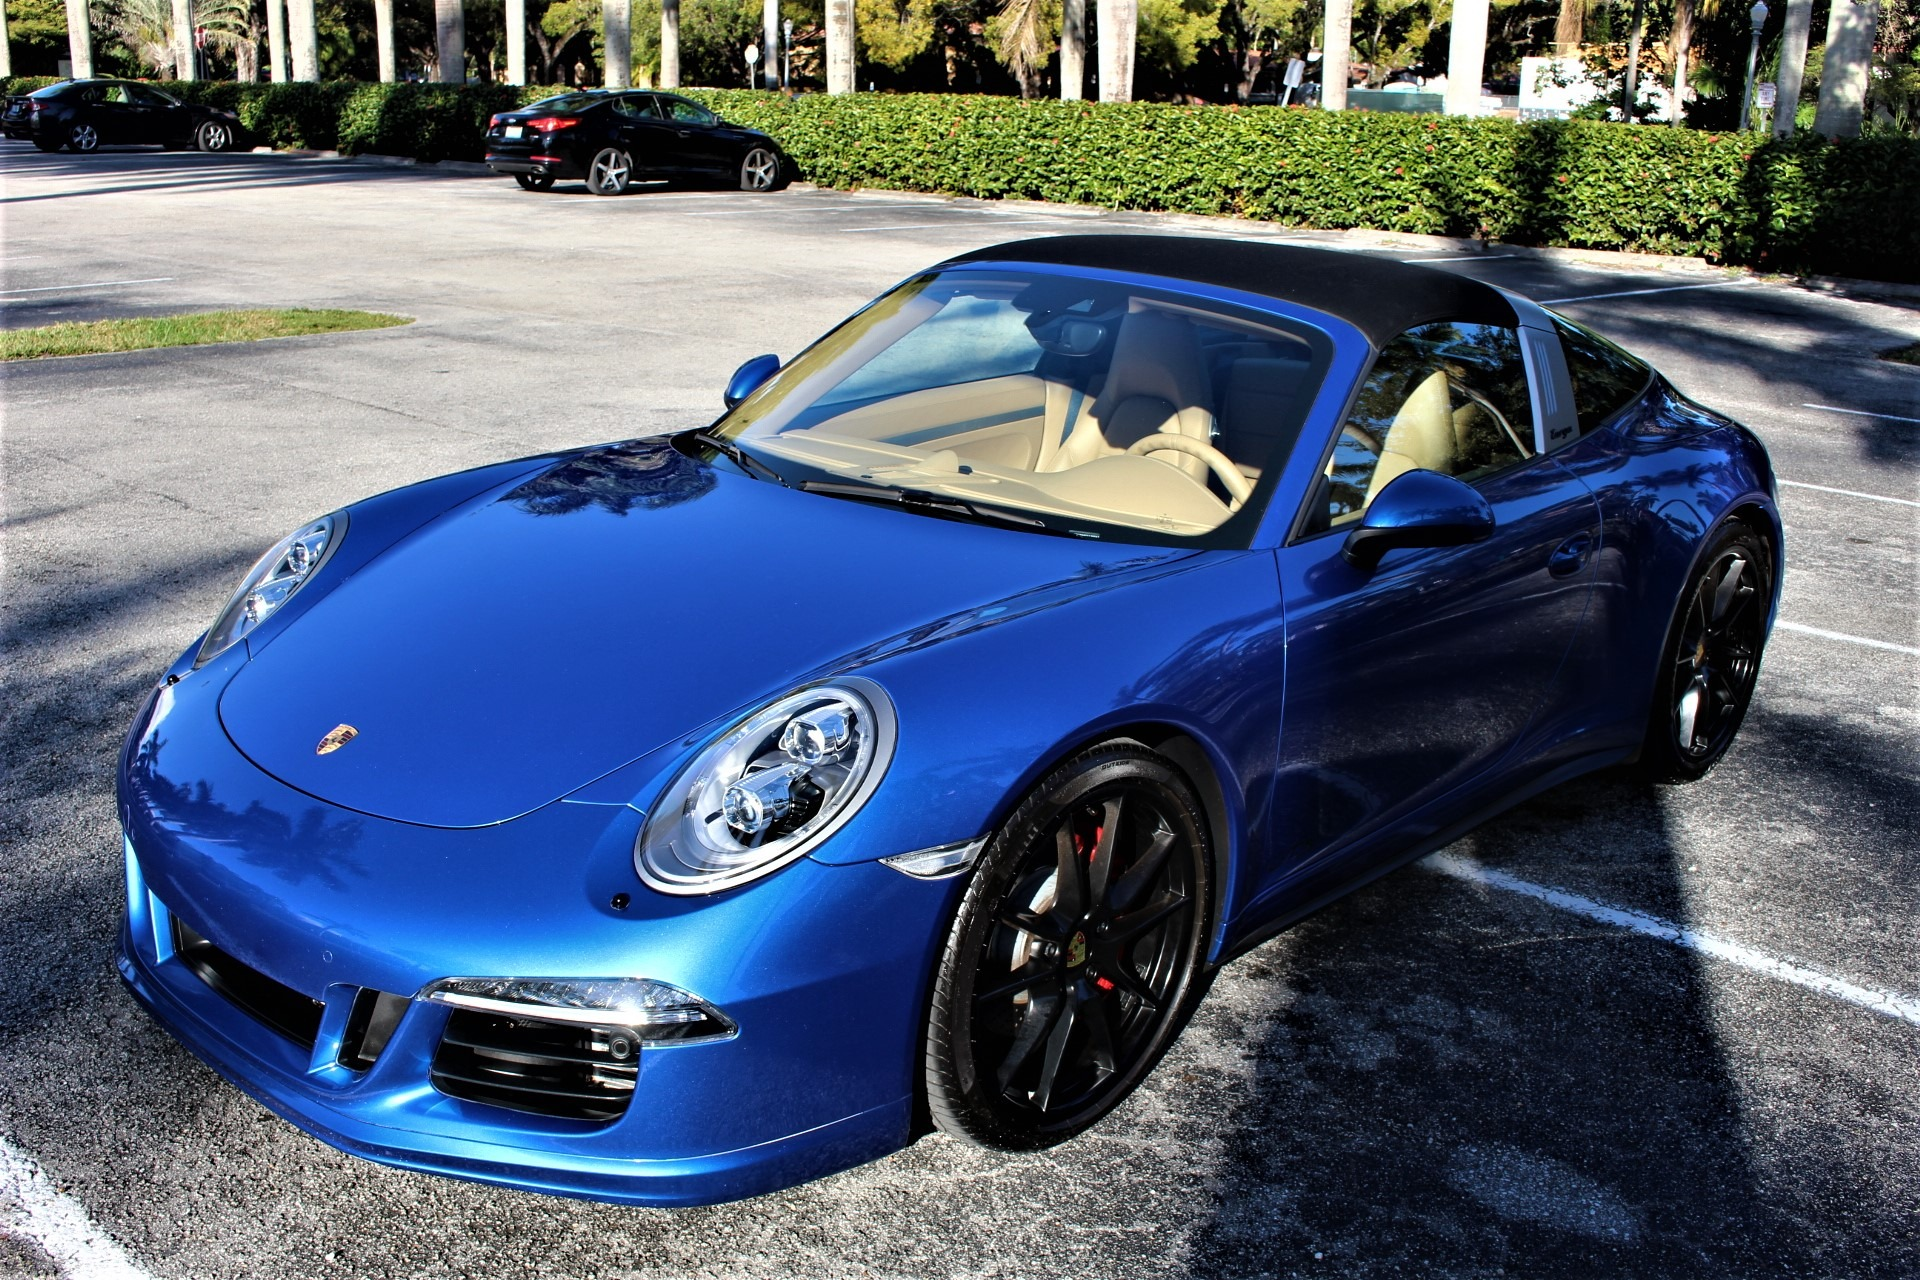 Used 2016 Porsche 911 Targa 4 GTS for sale $119,850 at The Gables Sports Cars in Miami FL 33146 4